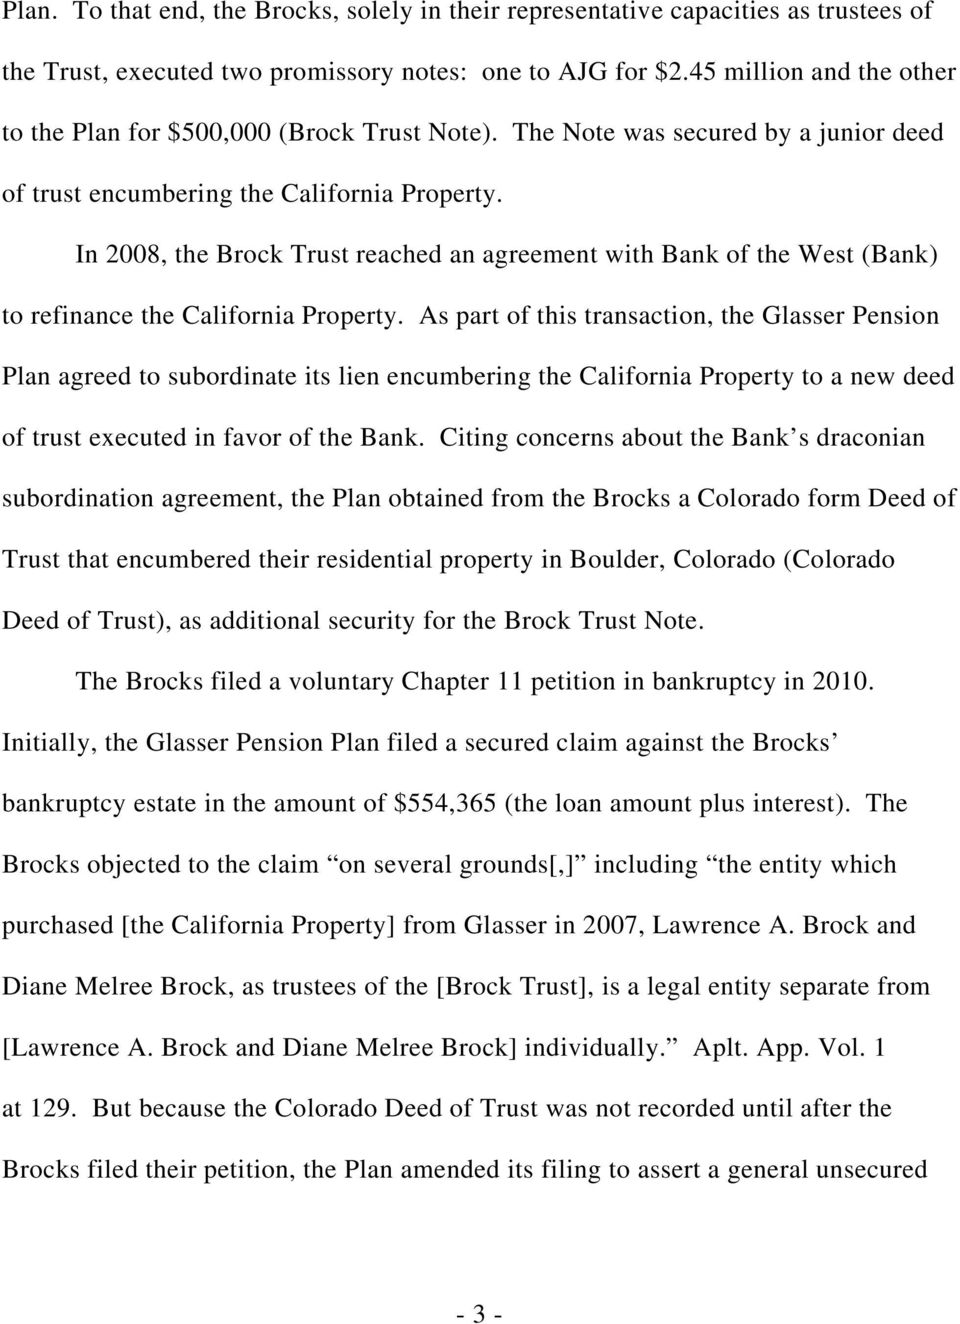 In 2008, the Brock Trust reached an agreement with Bank of the West (Bank) to refinance the California Property.